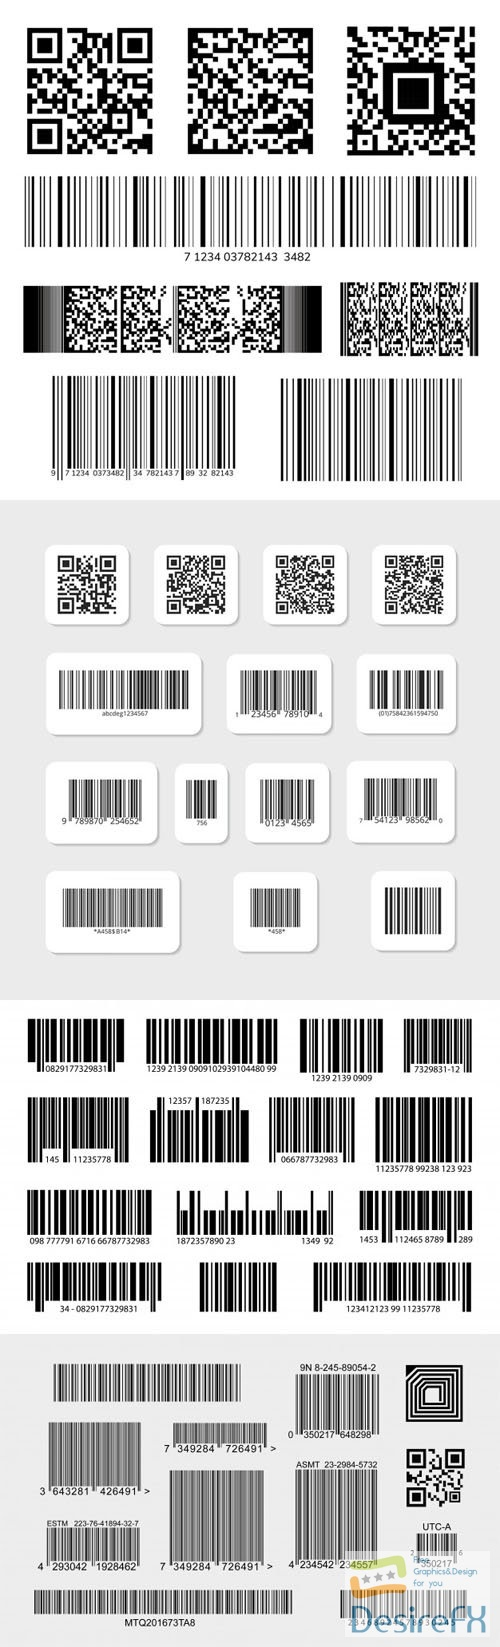 48 Various Digital Barcode Labels and Stickers Vector Templates